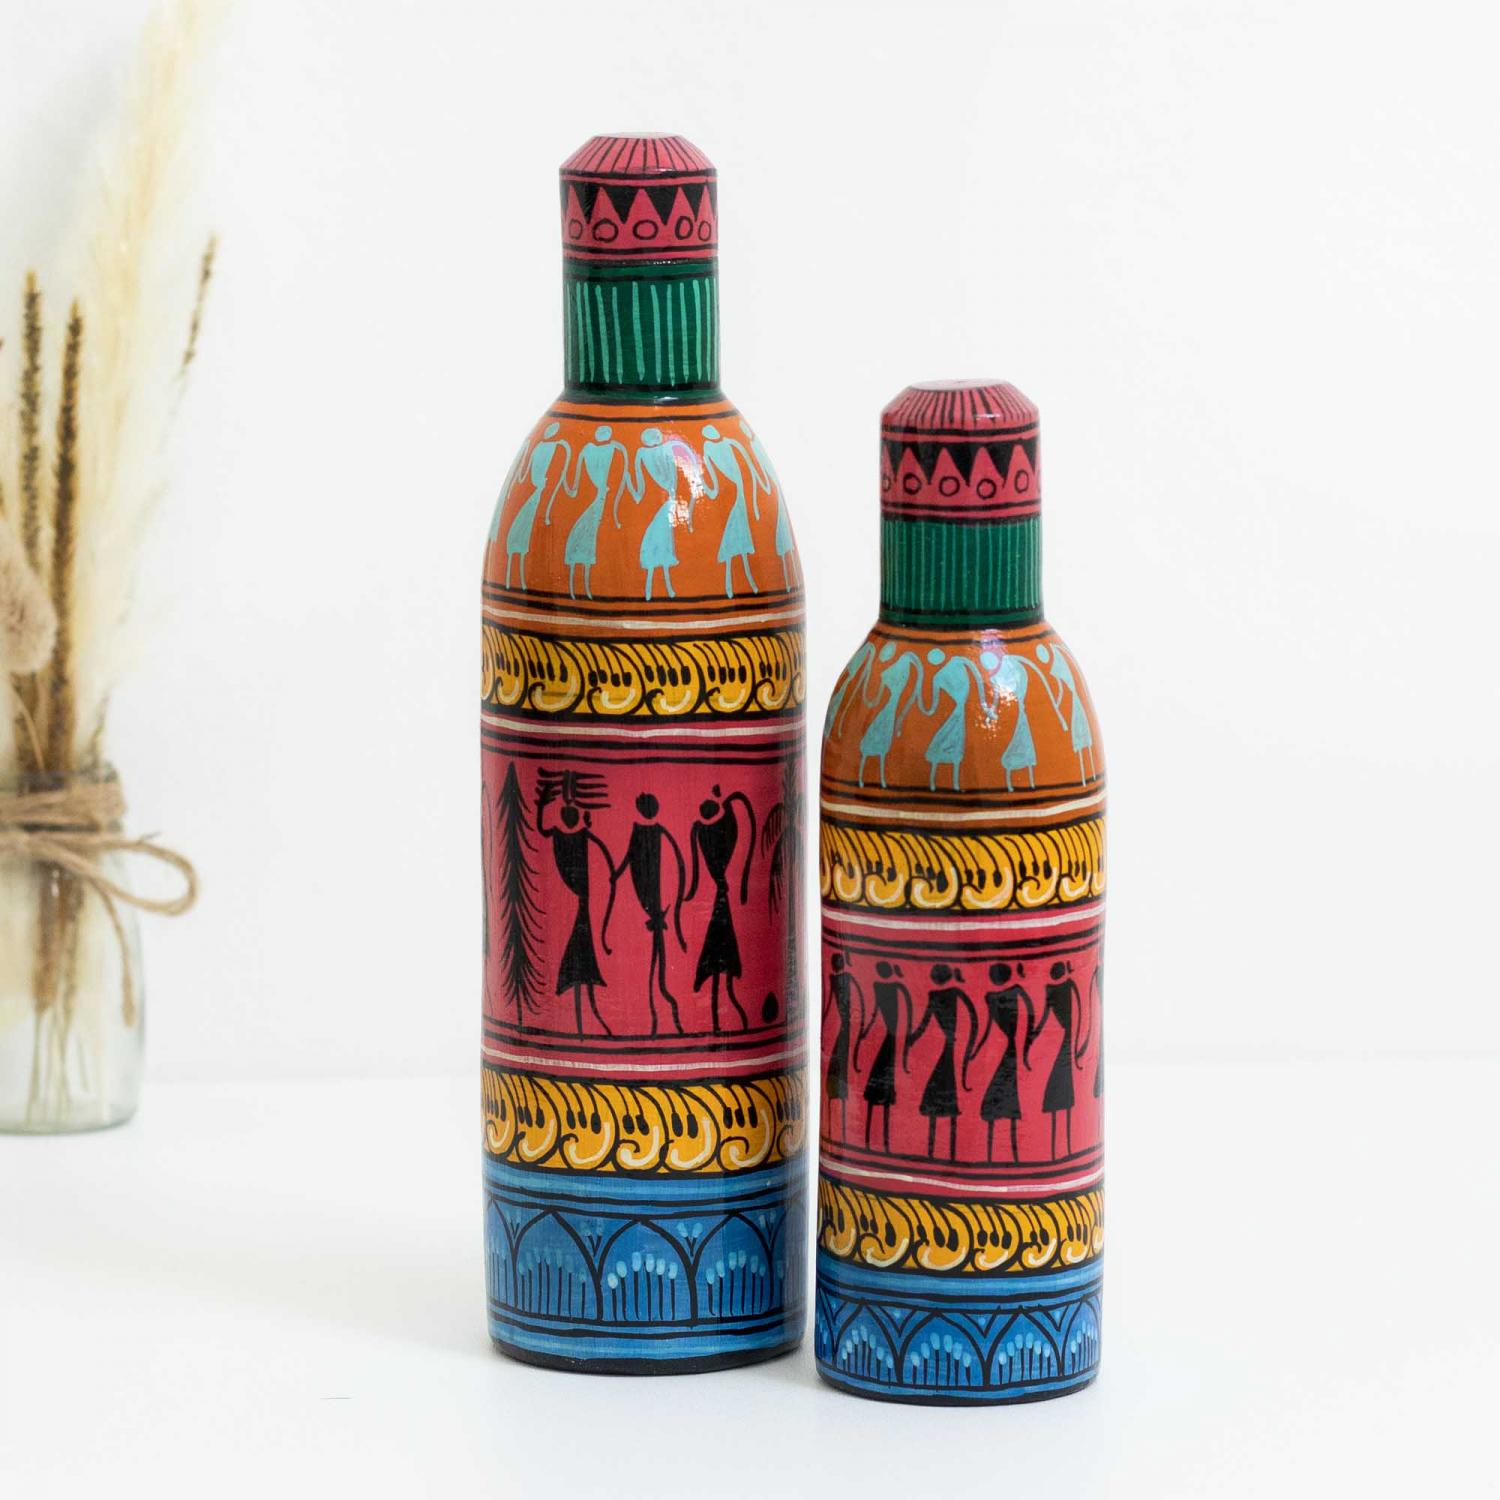 Decorative bottles with tribal motifs in green, pink, mustard and orange colors with a blue base on a white table with dried pampas grass to the left in the background